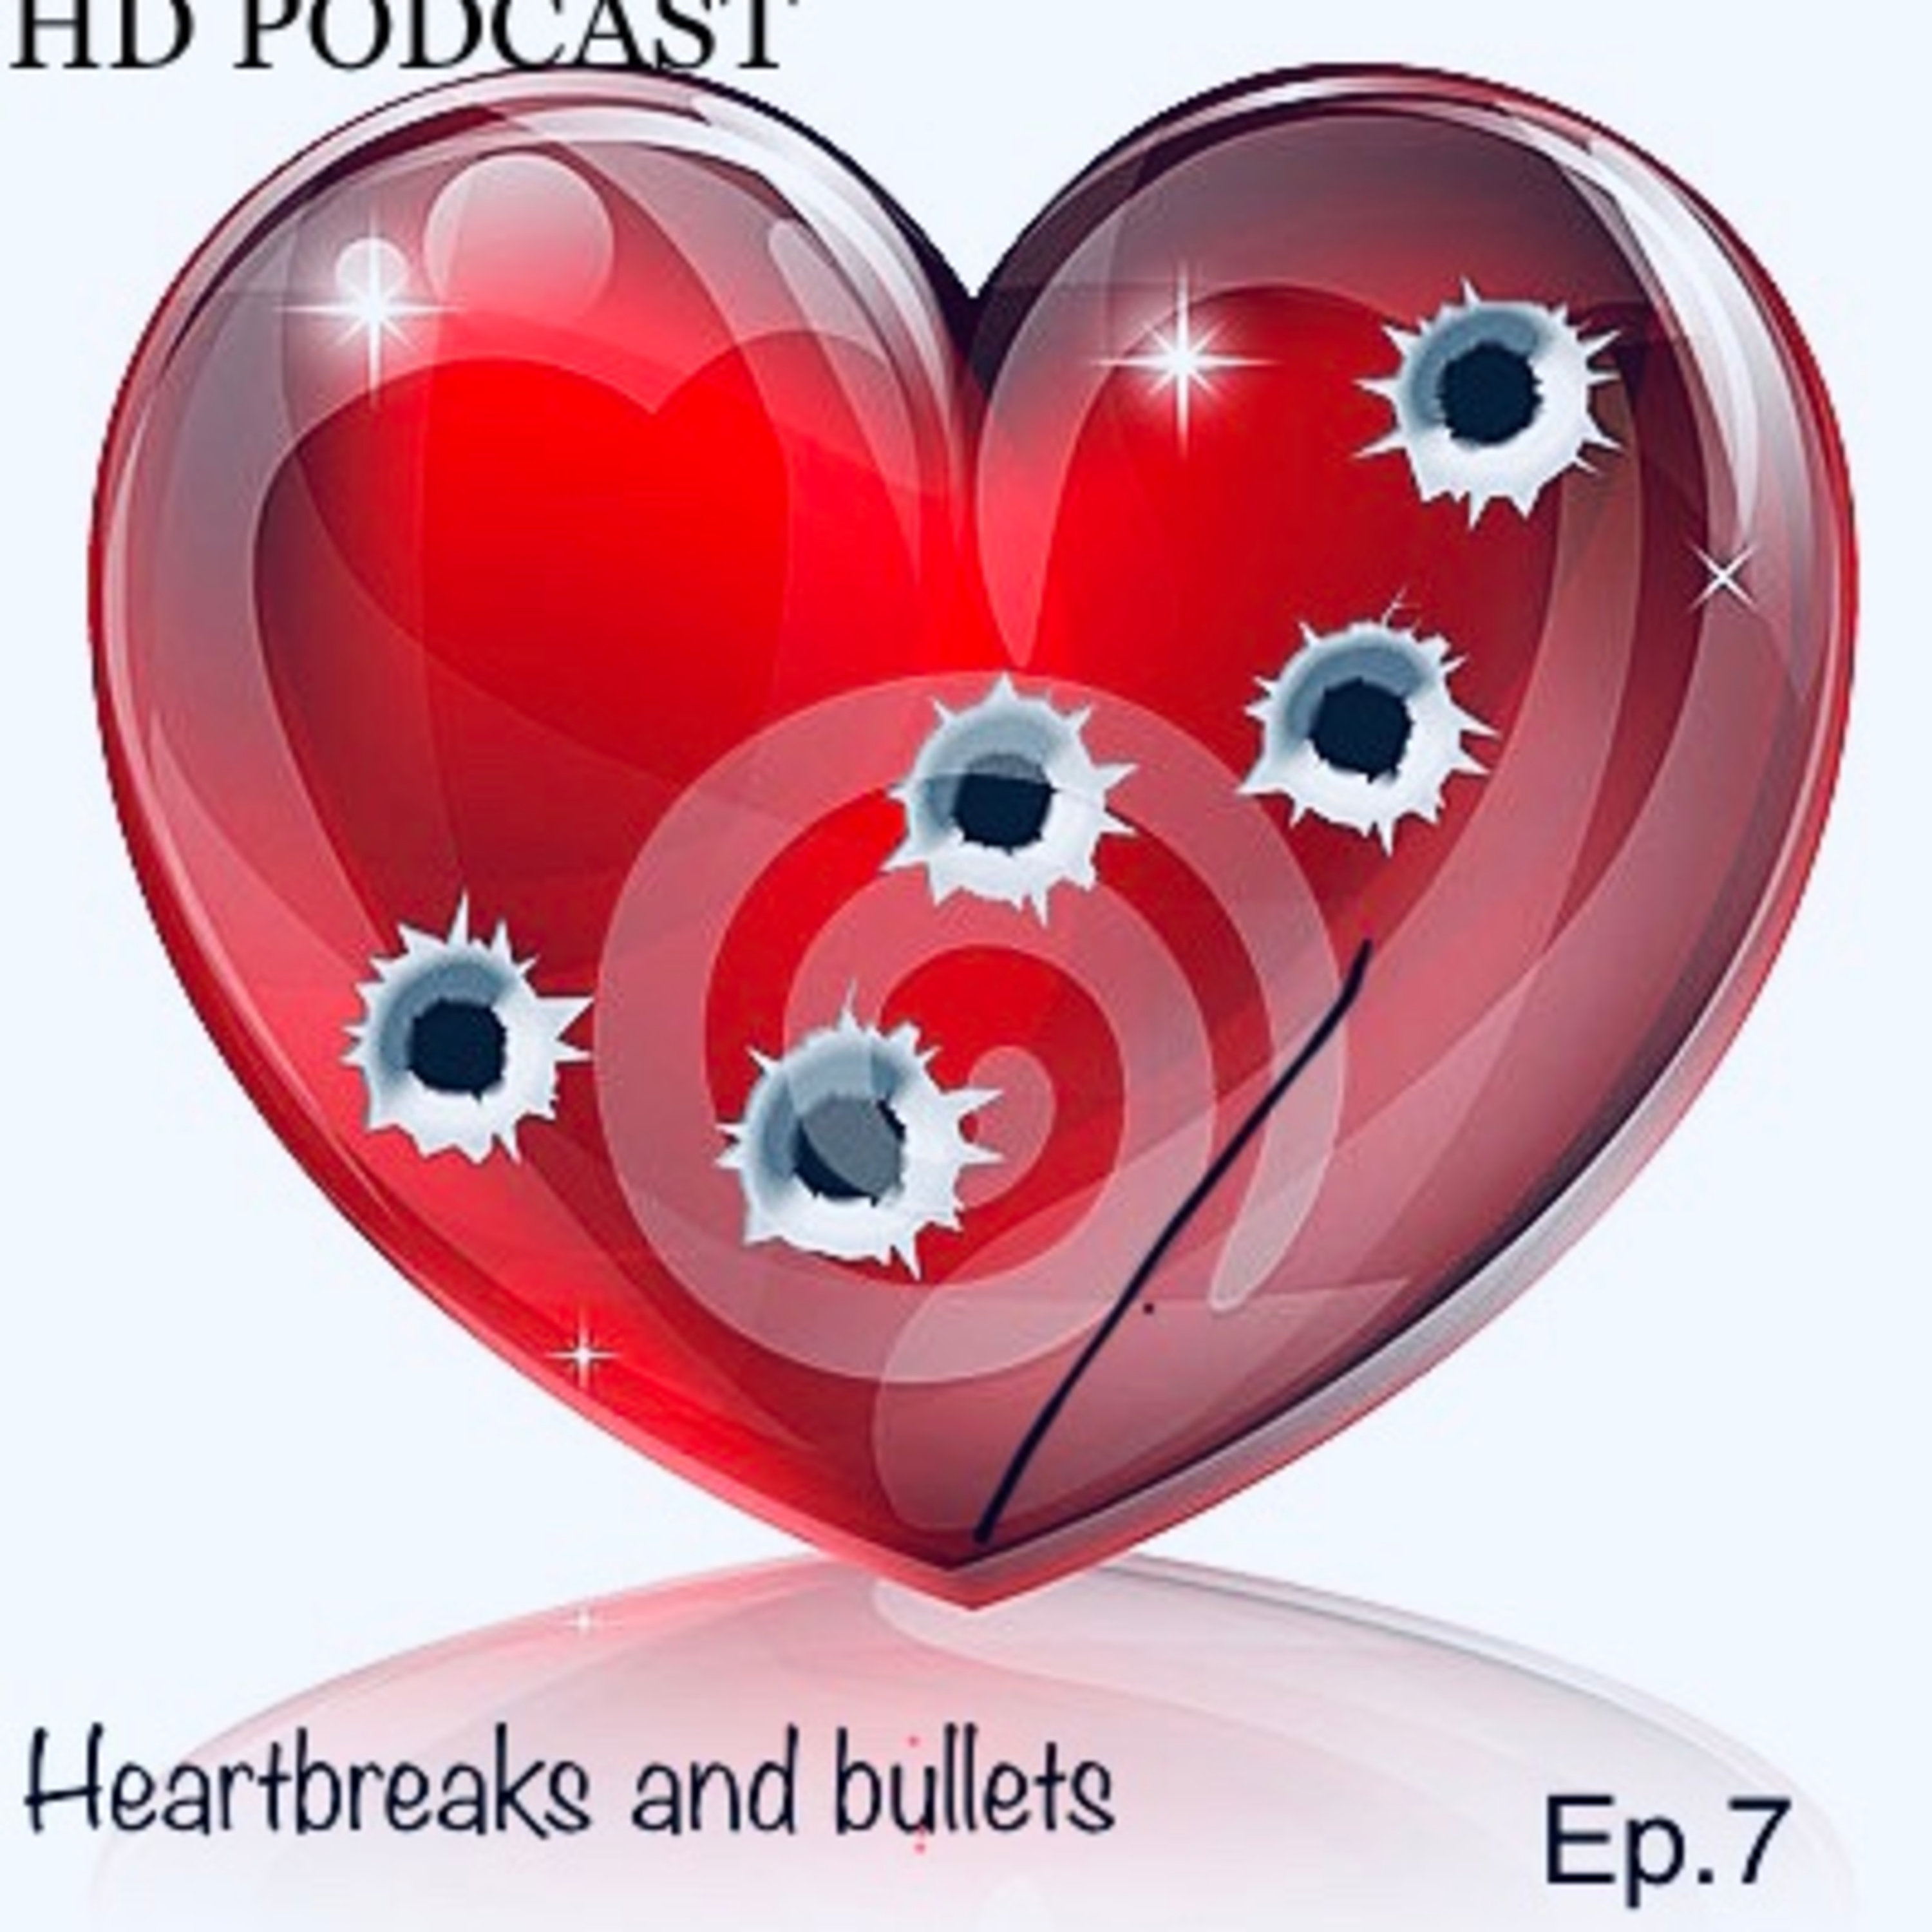 Heartbreaks and Bullets ep.7